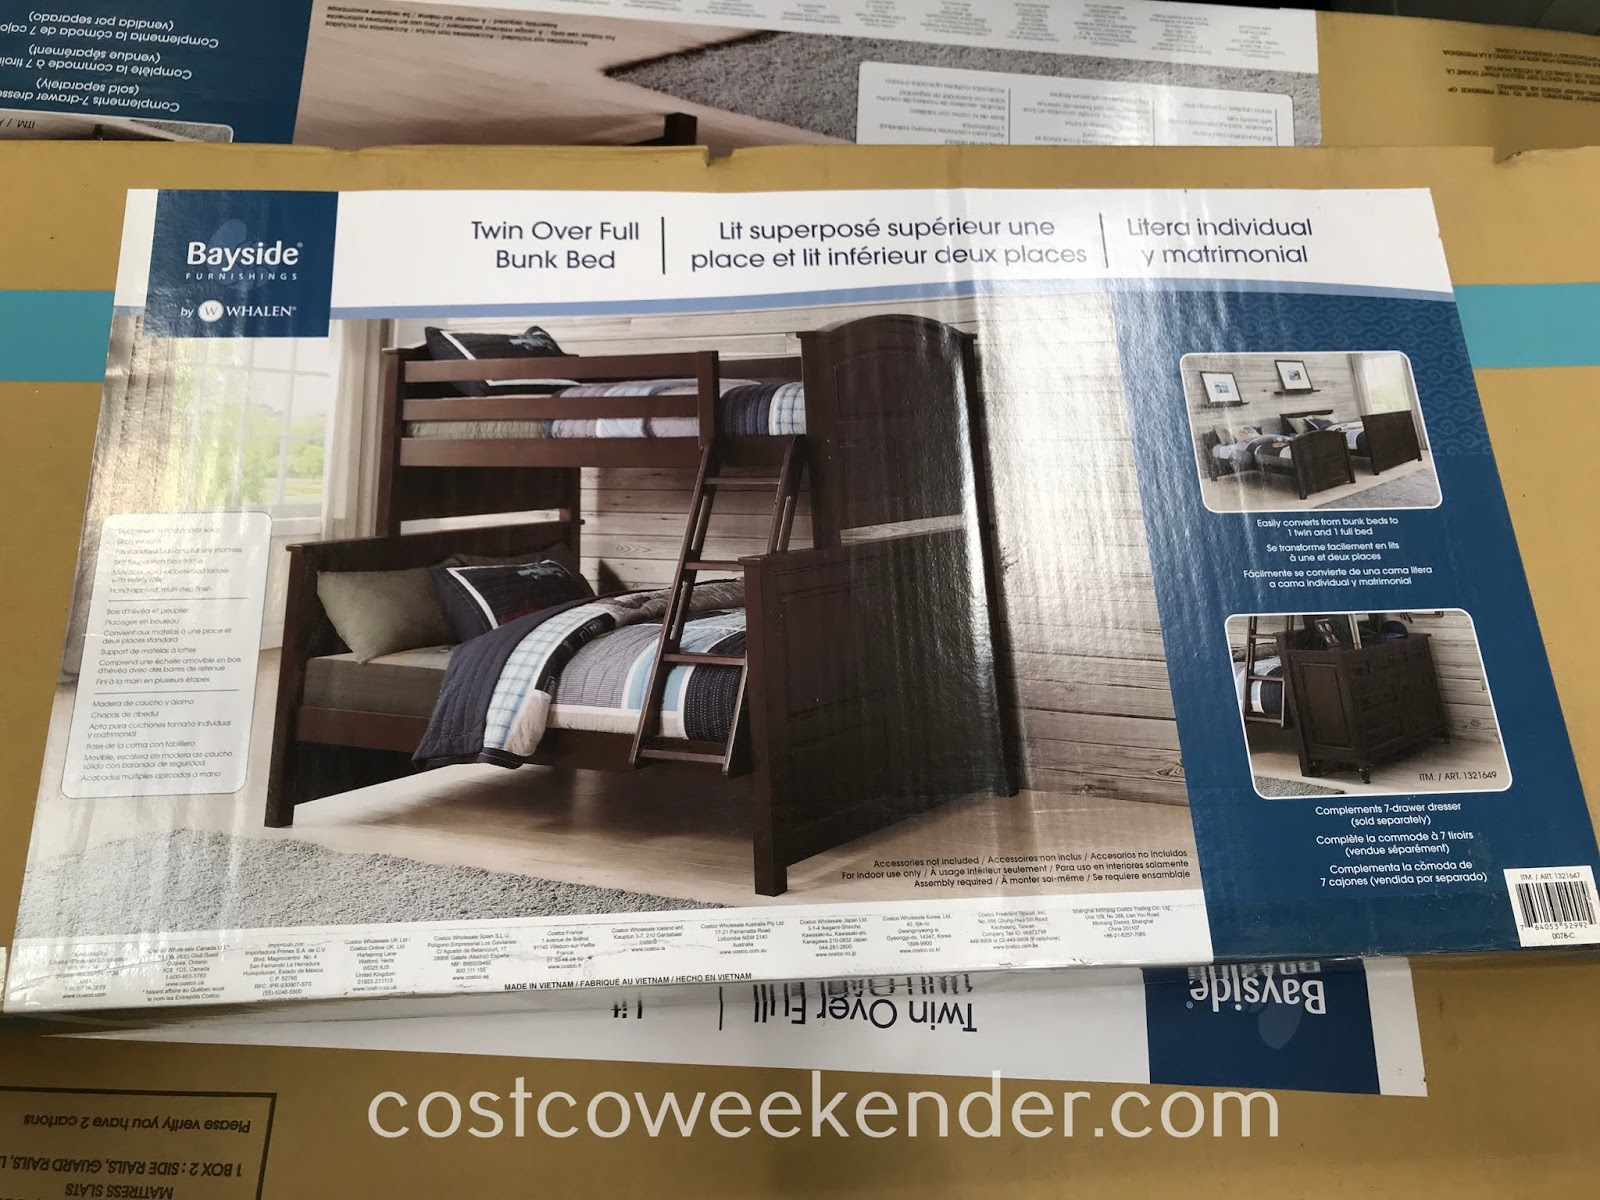 Costco 1321647 - Save space in your kids' bedroom with the Whalen Bayside Furnishings Twin Over Full Bunk Bed